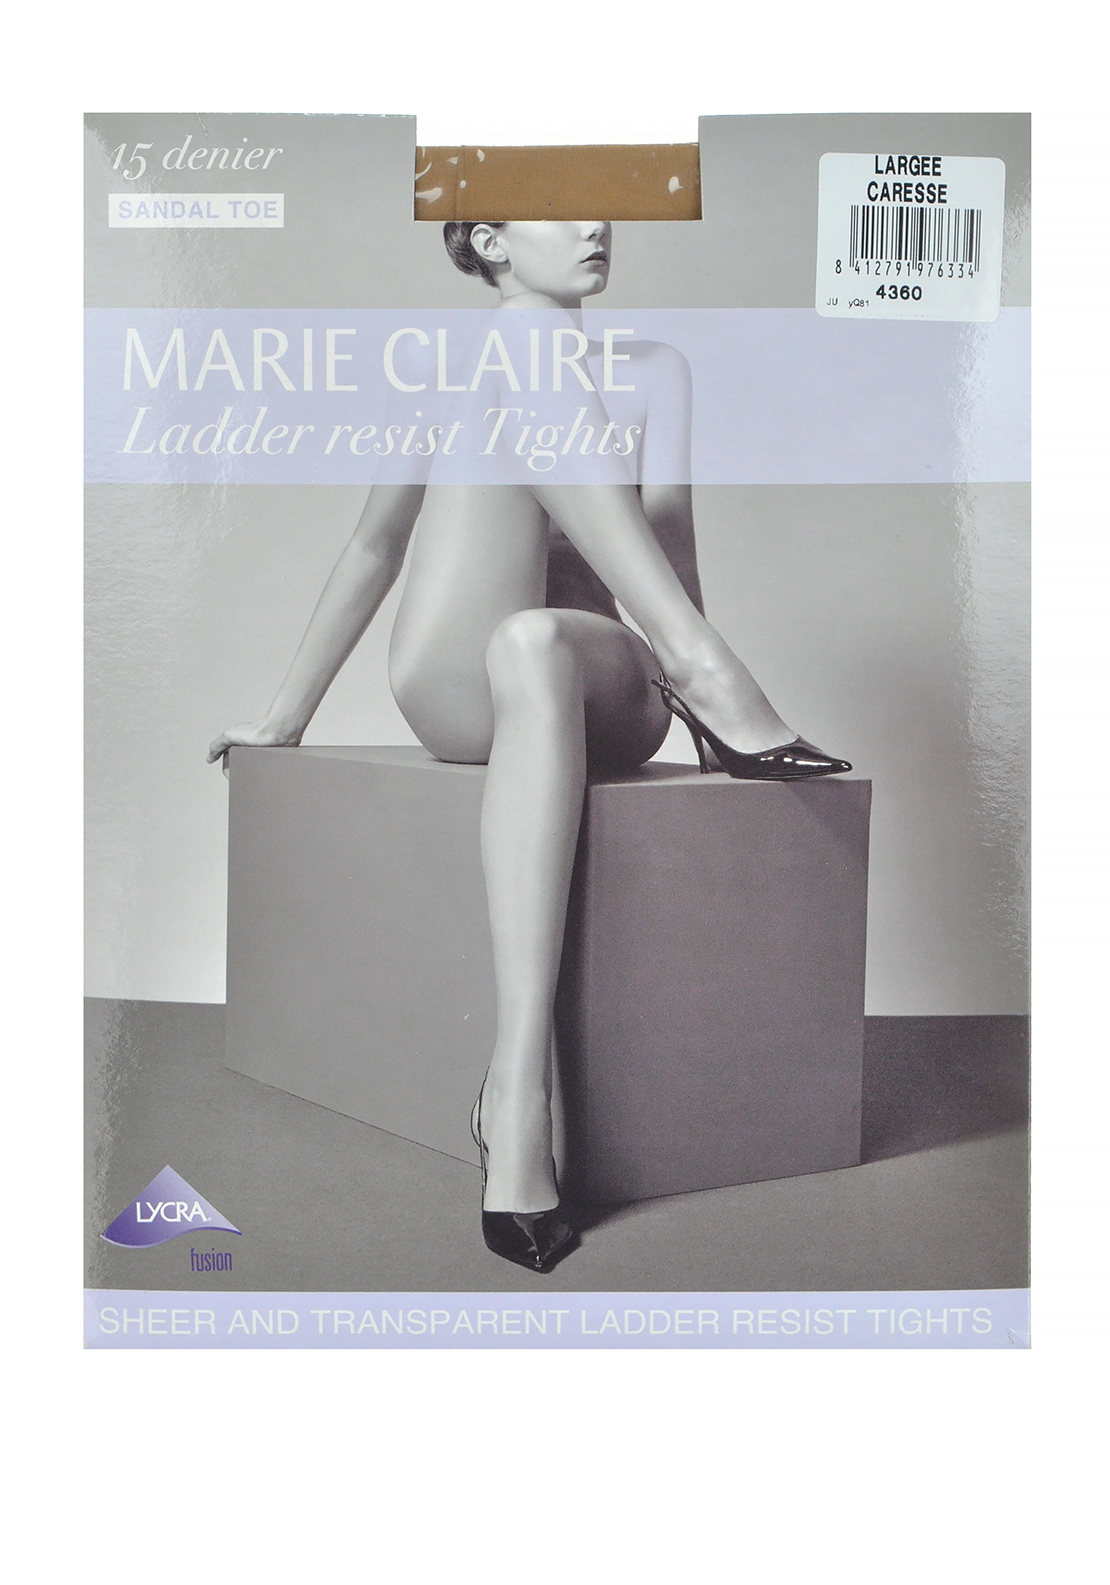 Marie Claire 15 Denier Ladder Resist Tights, Caresse